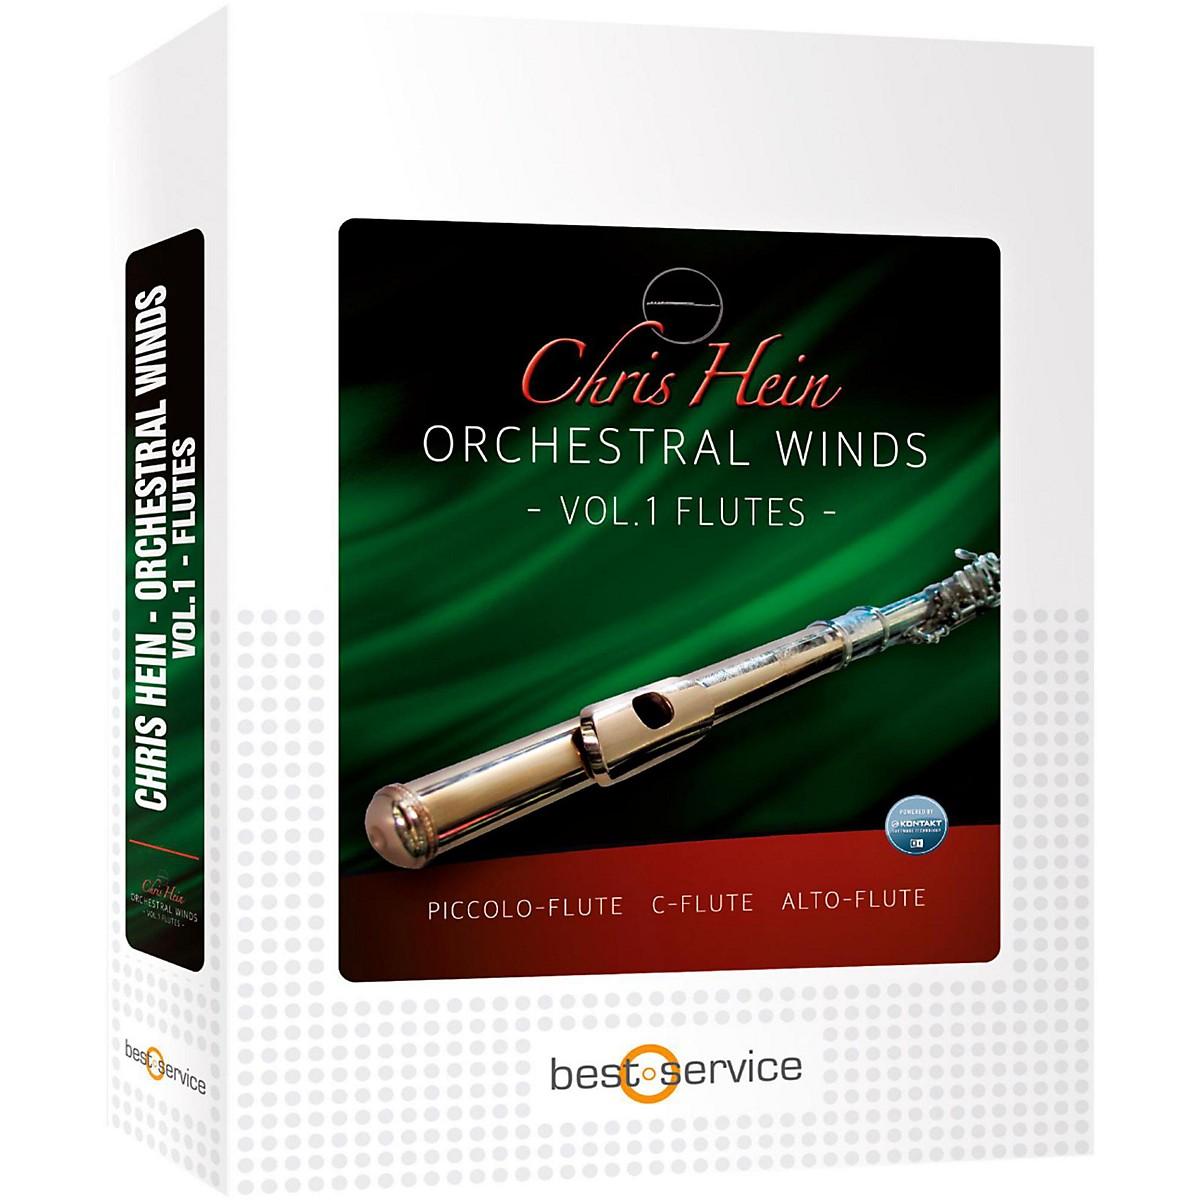 Best Service Chris Hein Orchestral Winds Vol 1 - Flutes